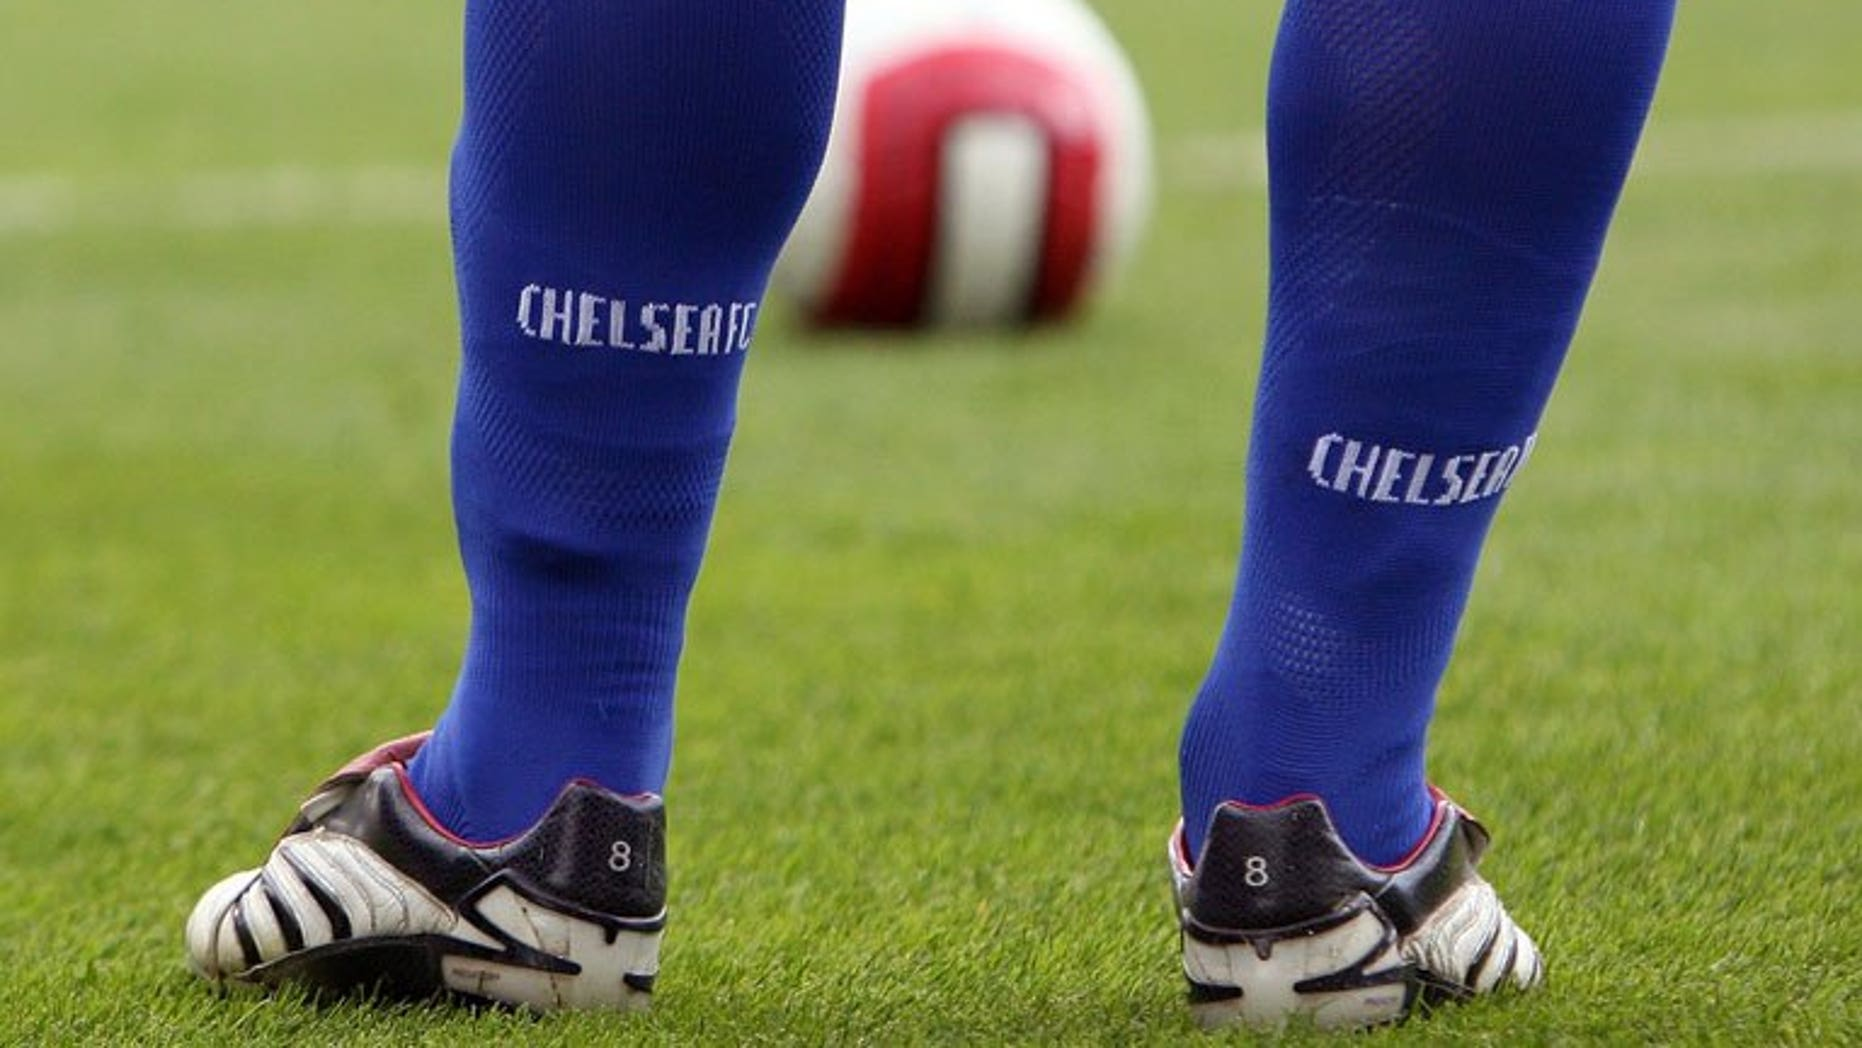 Chelsea's Frank Lampard waits to take a free kick during a Premeirship match against Fulham in London, September 23, 2006. Football anti-racism group Kick It Out launched a new mobile phone tool for fans and players to report racist or homophobic abuse, after a number of high-profile incidents last season.